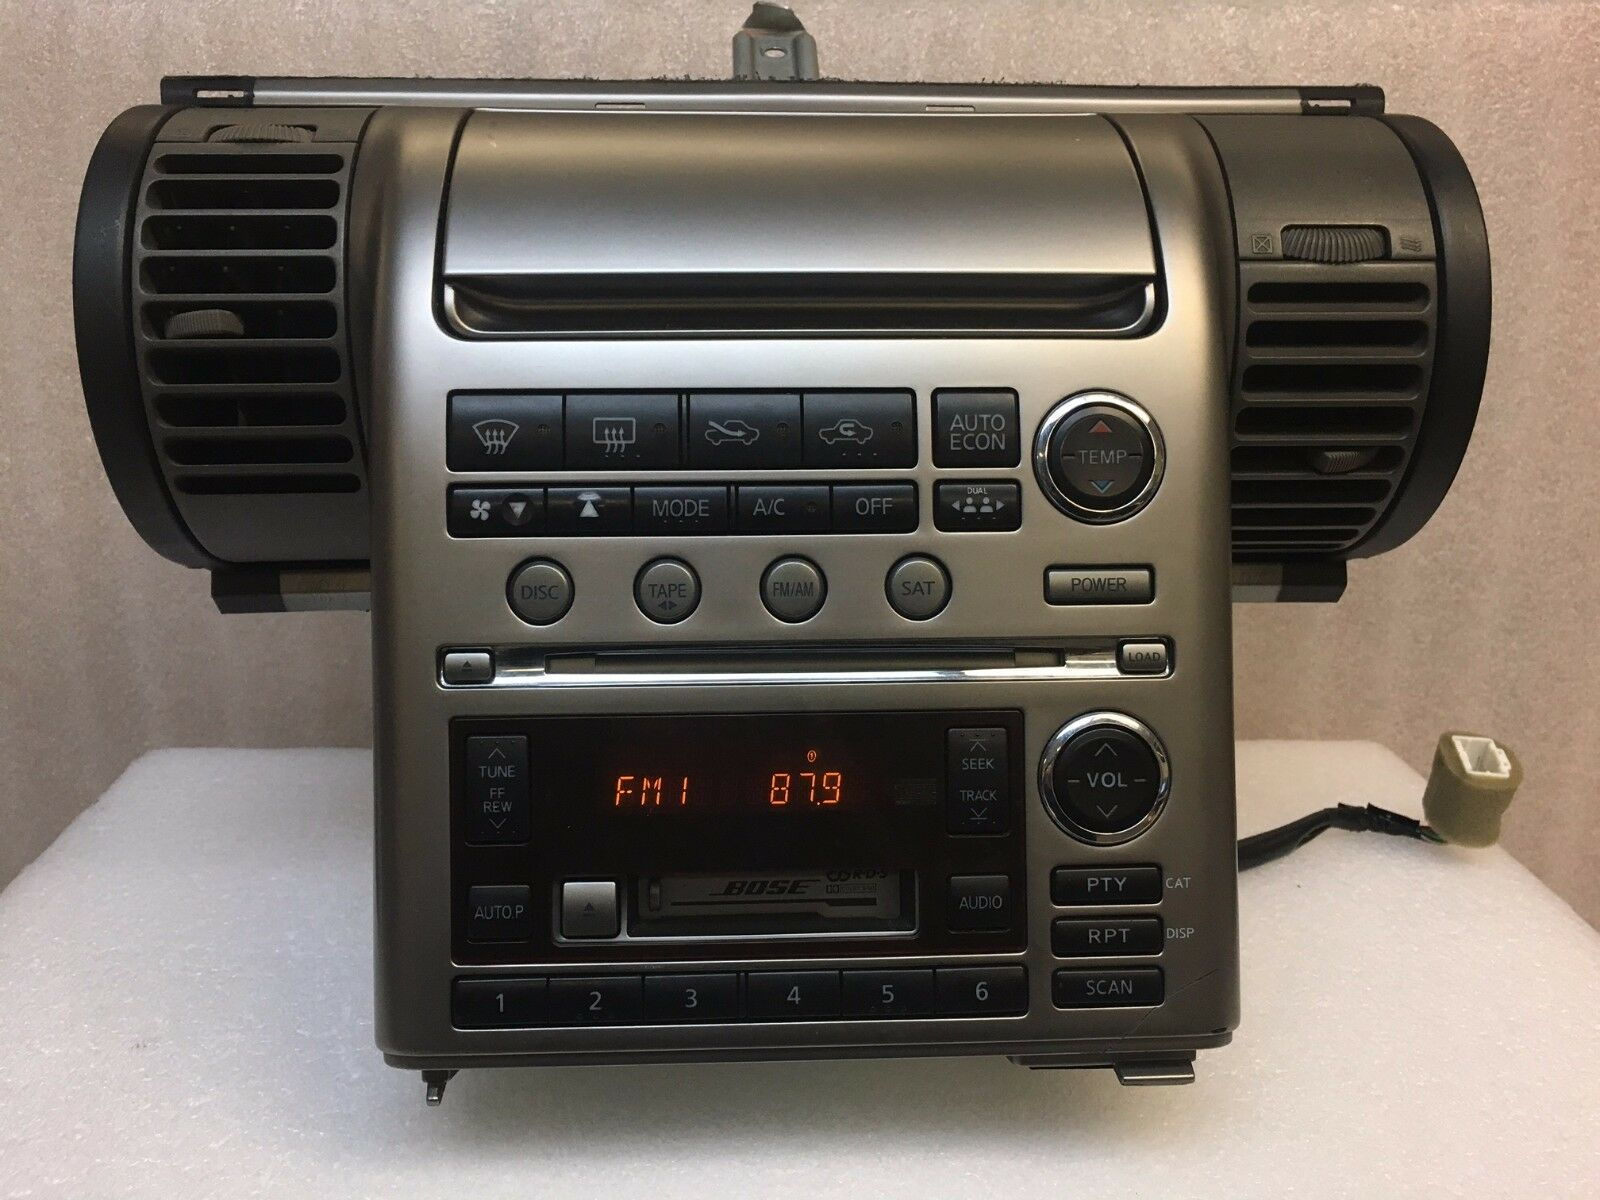 03 04 infiniti g35 bose sat radio 6 cd changer tape player. Black Bedroom Furniture Sets. Home Design Ideas